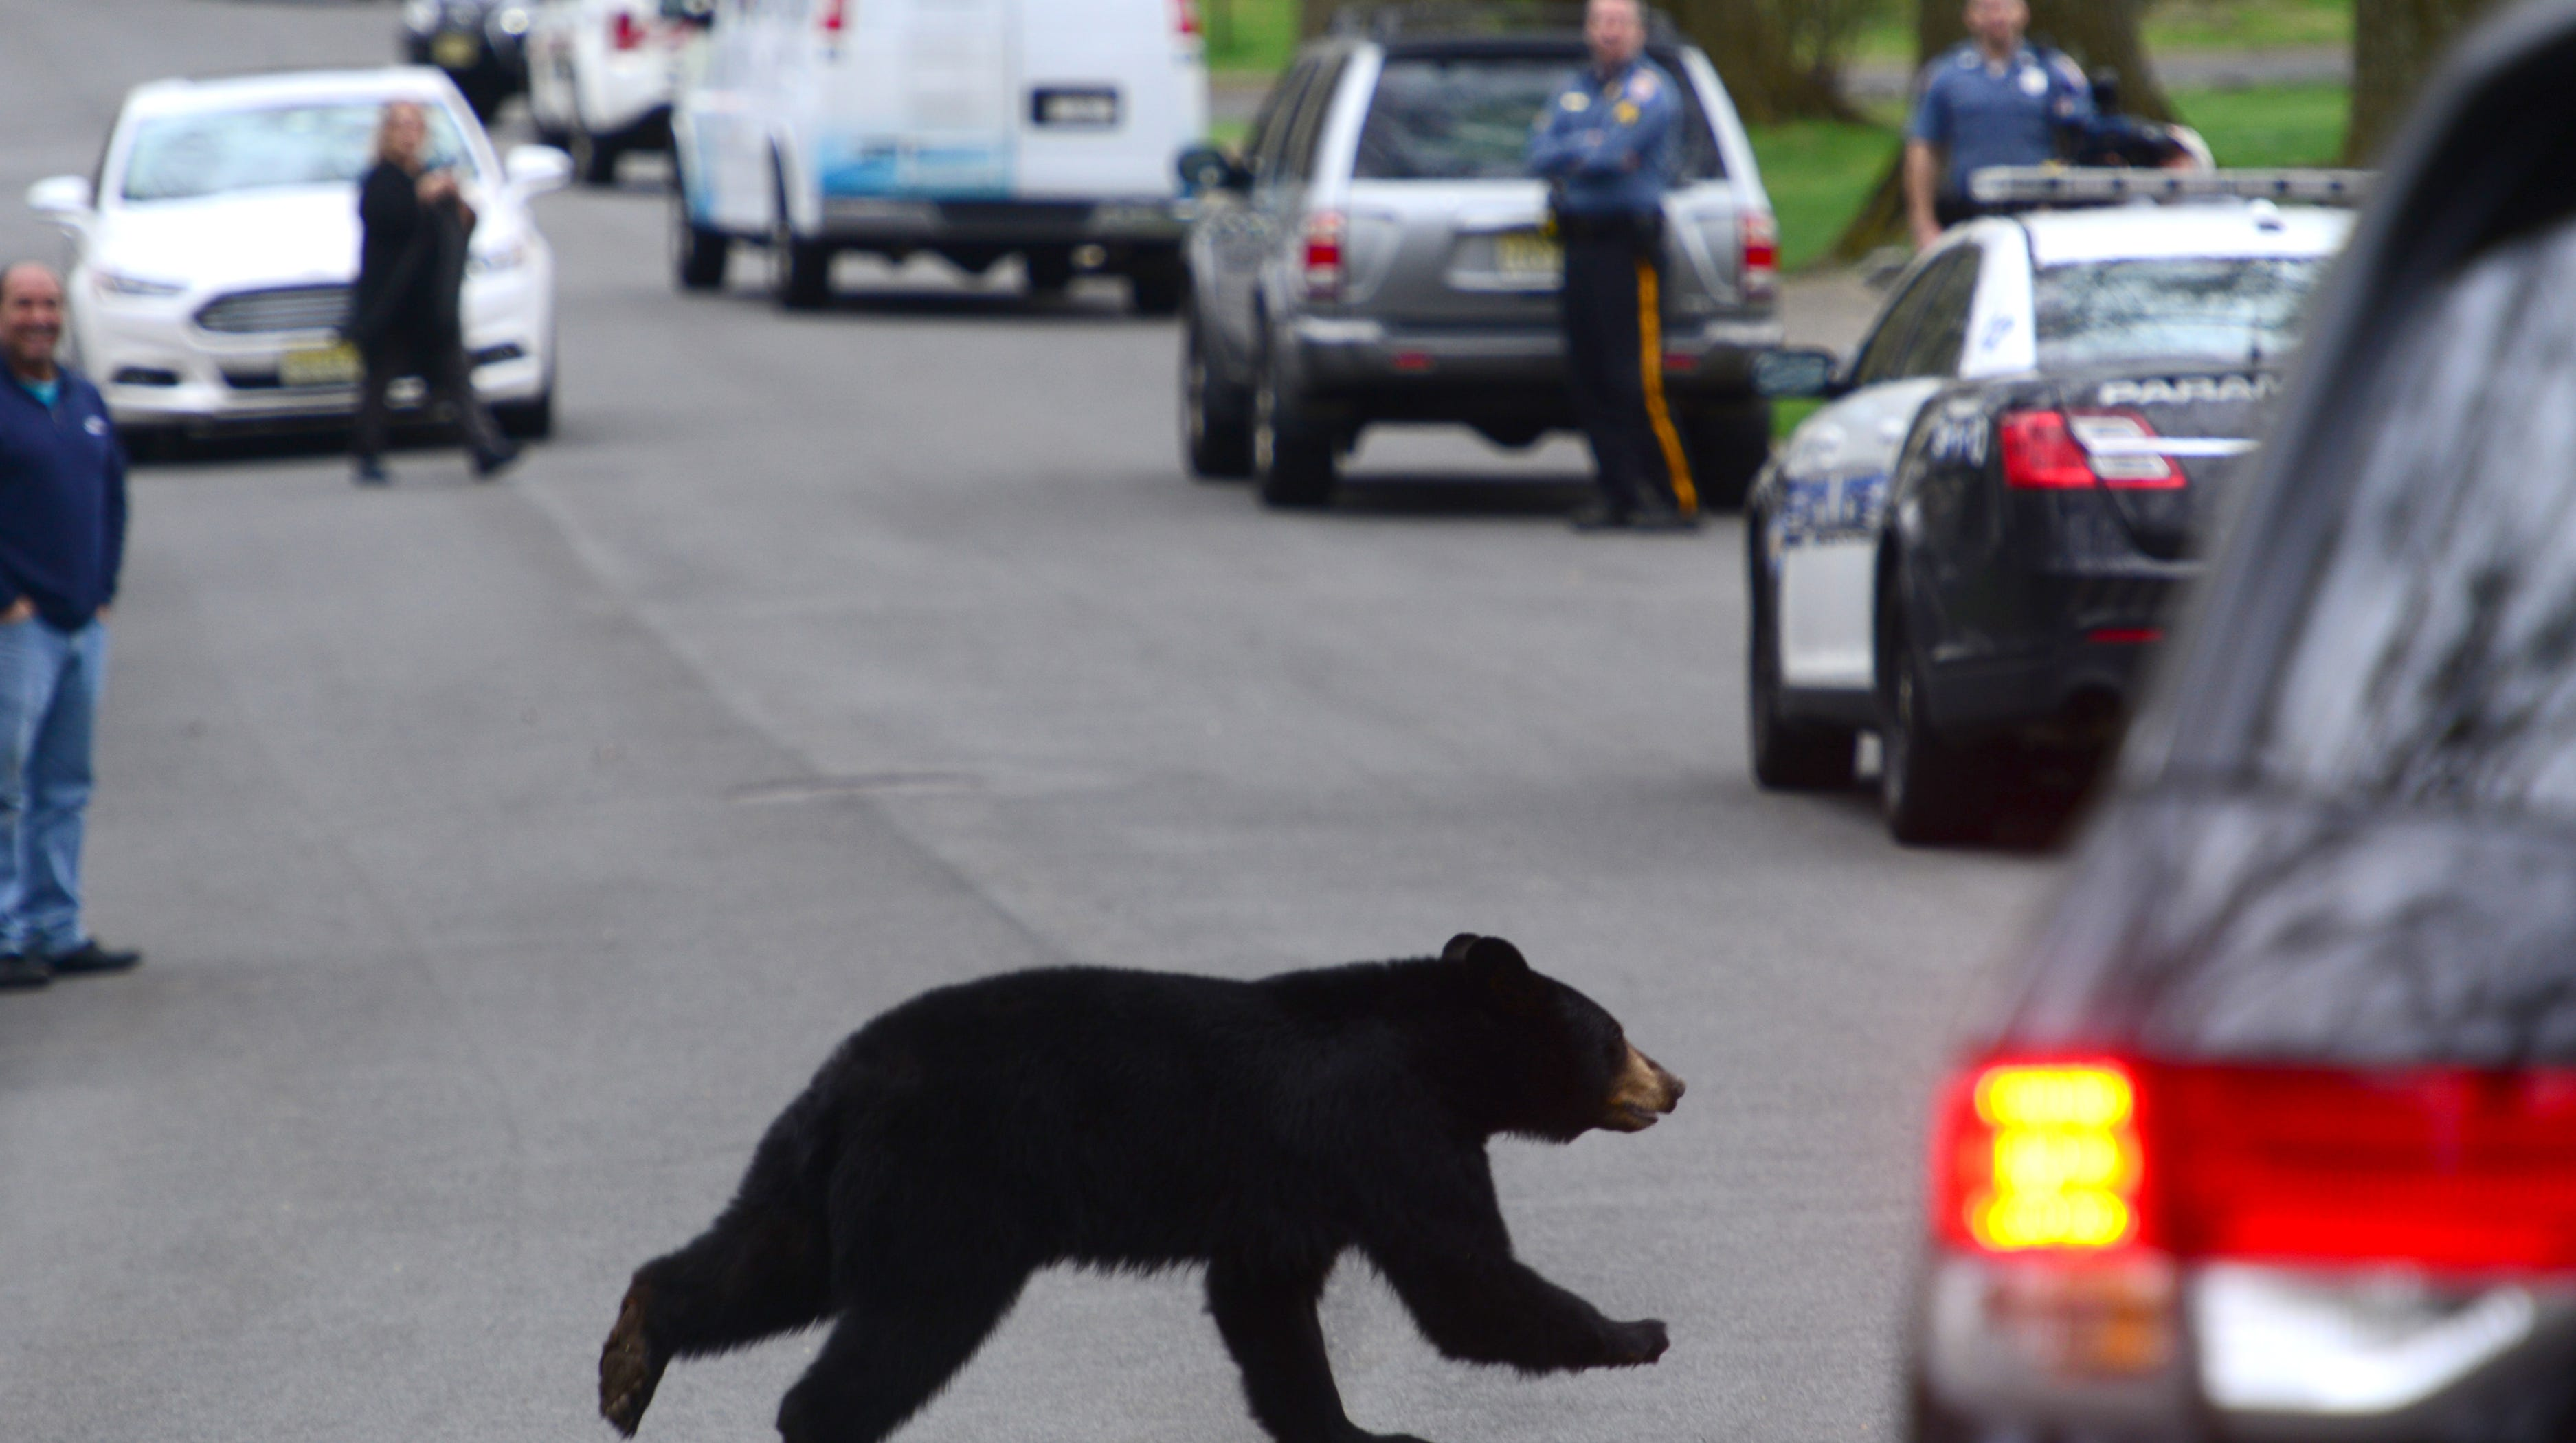 NJ DEP doesn't want you to know where the bears are